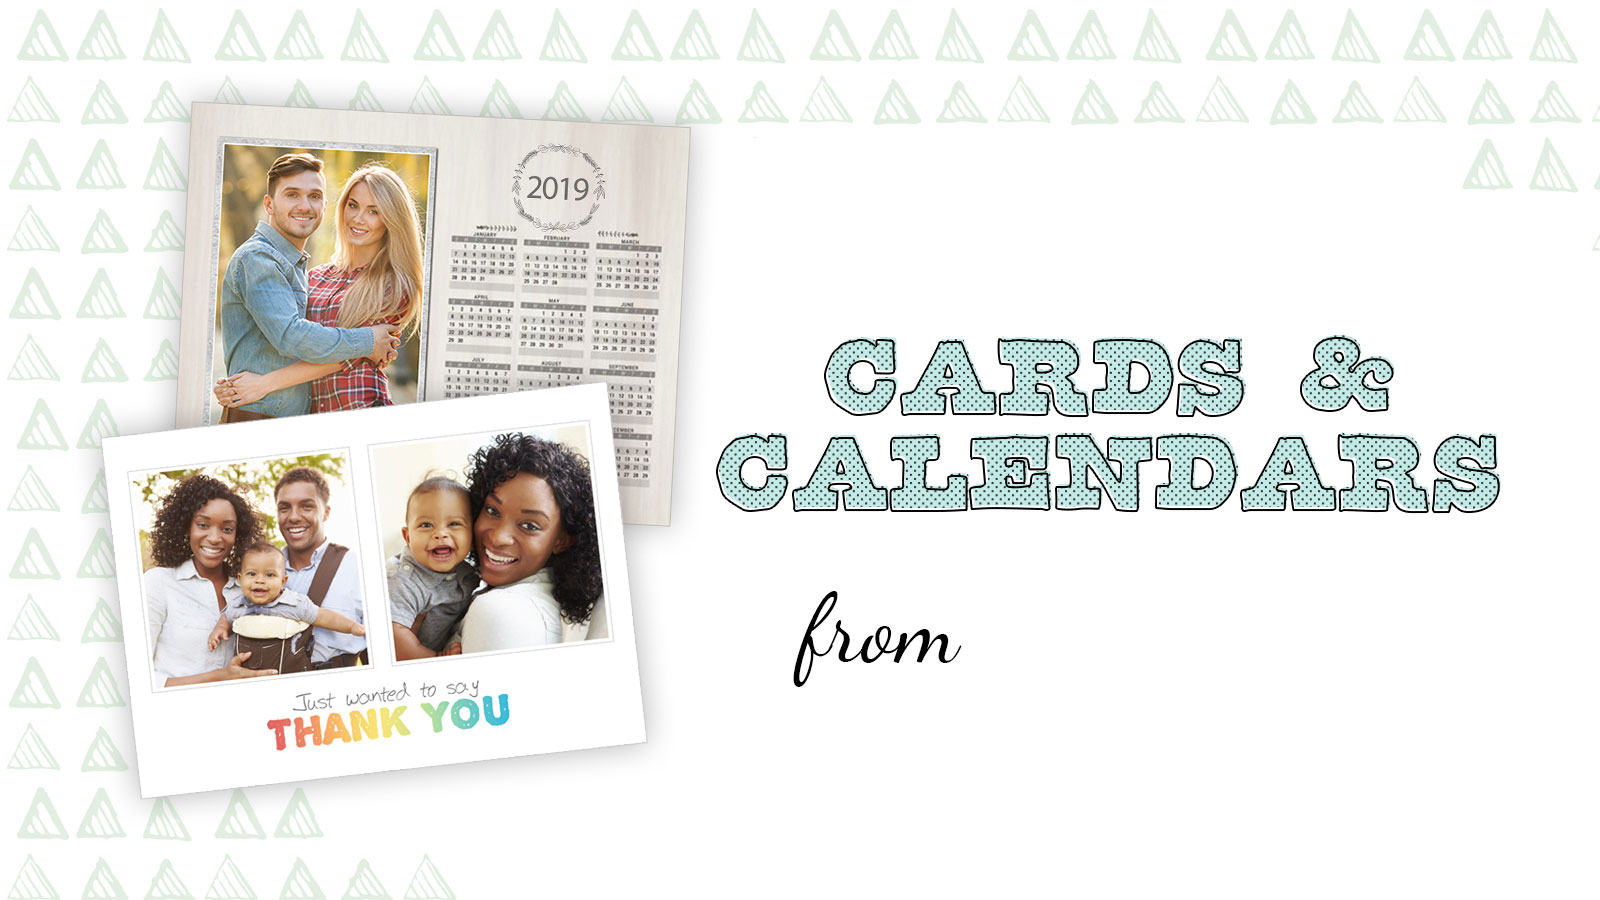 Cards and Calendars